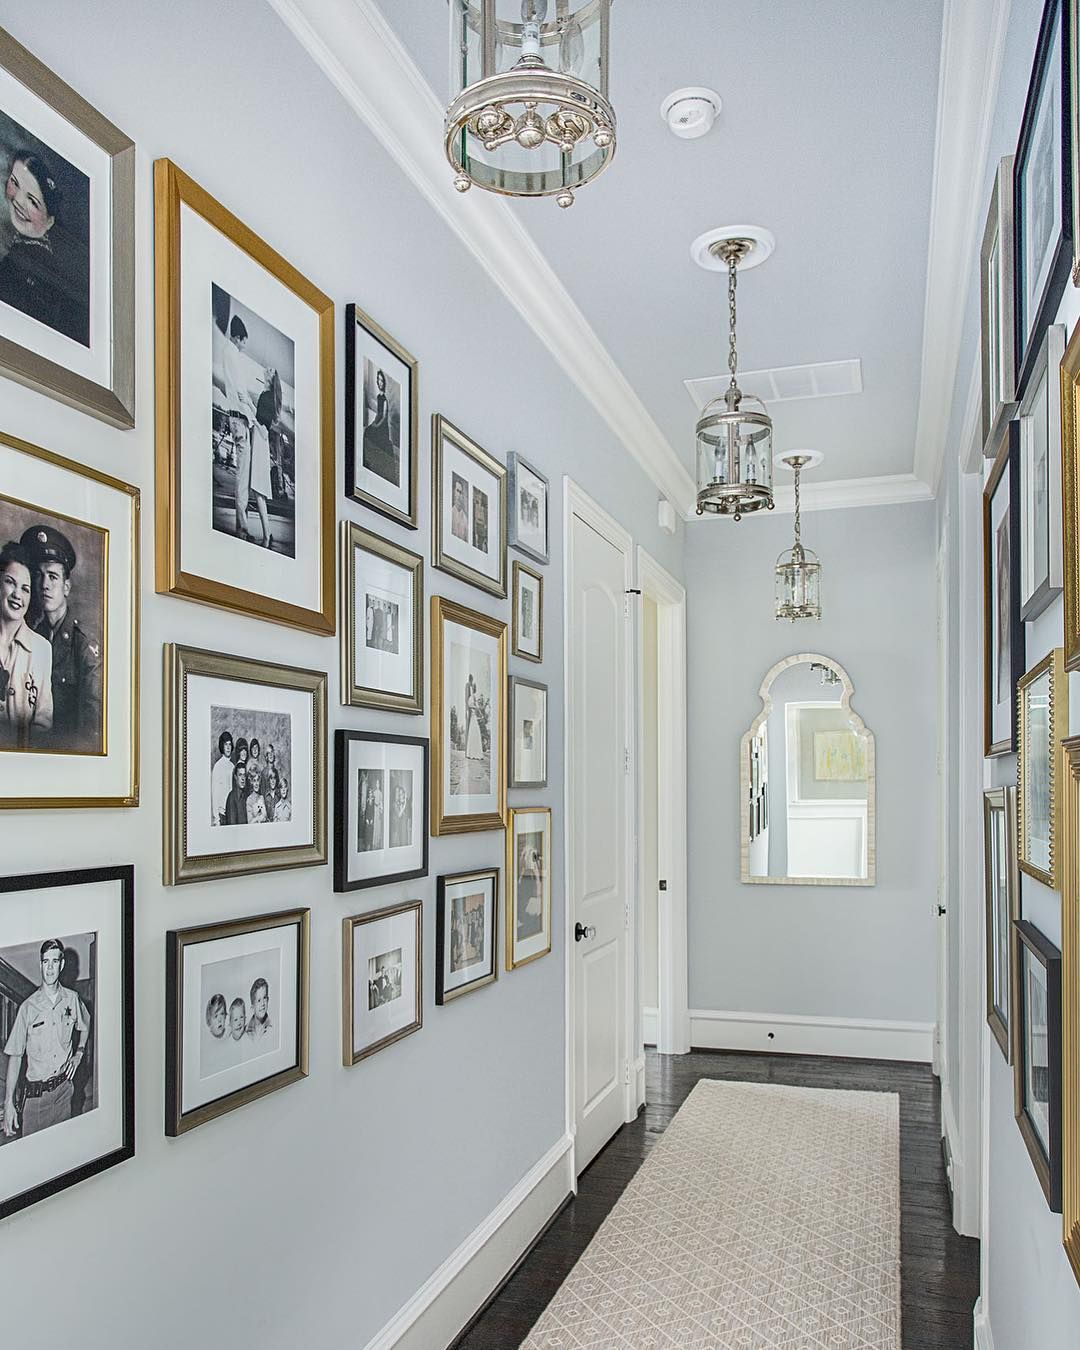 Emily Johnston Larkin On Instagram A Gallery Wall Of Old Family Photos Is The Perfect Answer To A Long Gallery Wall Frames Family Gallery Wall Frames On Wall